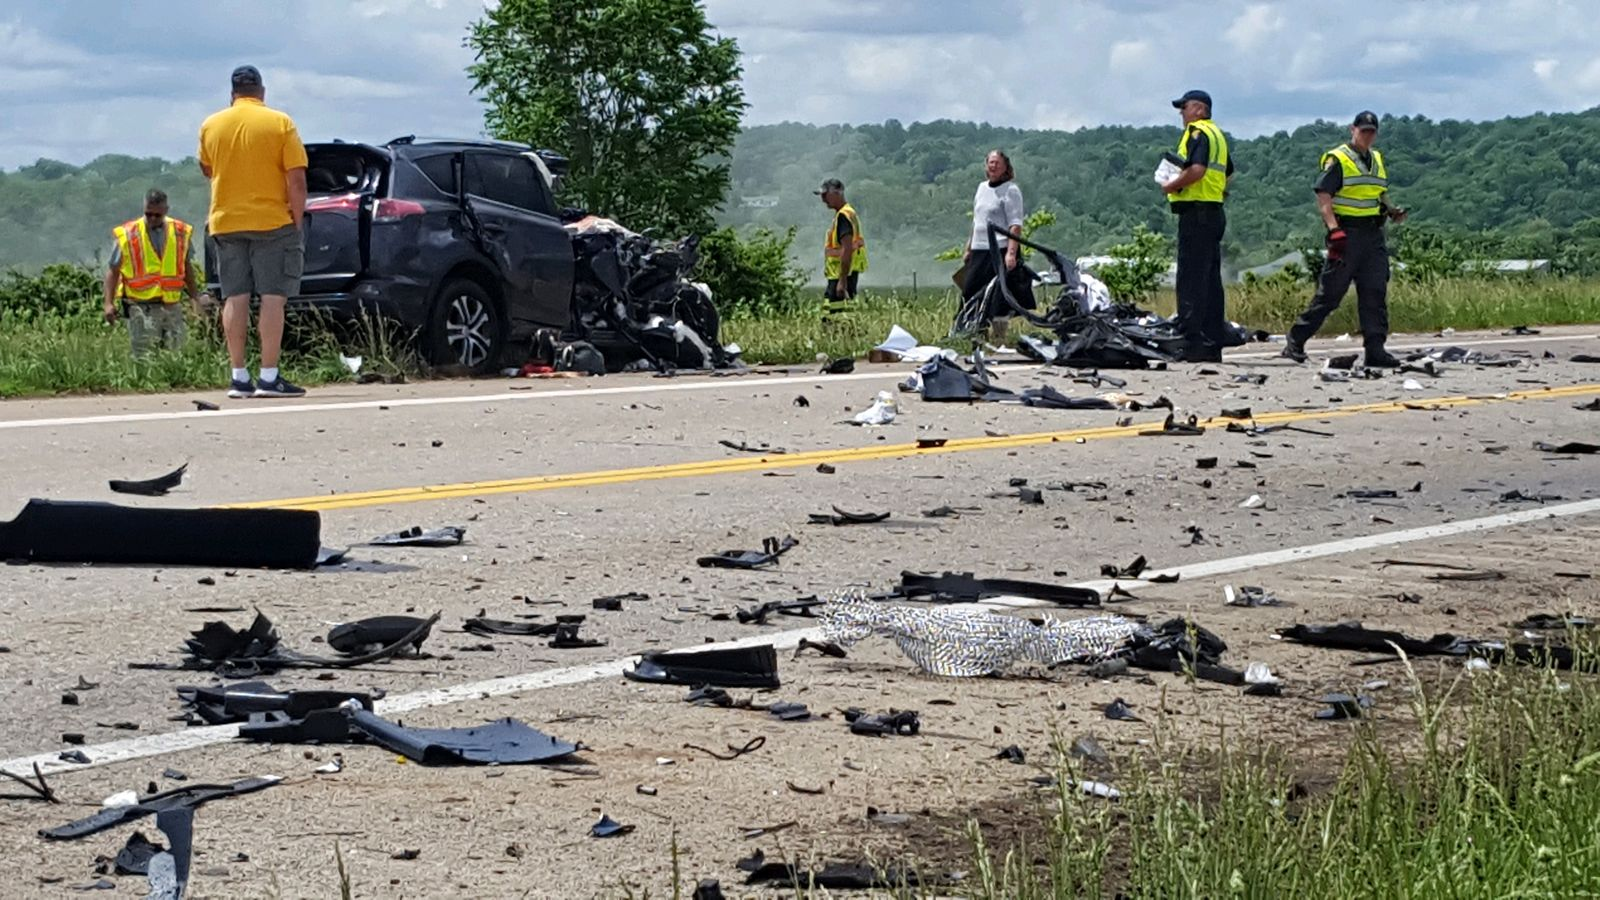 Debris from a double fatal crash covers part of U.S. 33 in Meigs County, Ohio. (WCHS/WVAH)